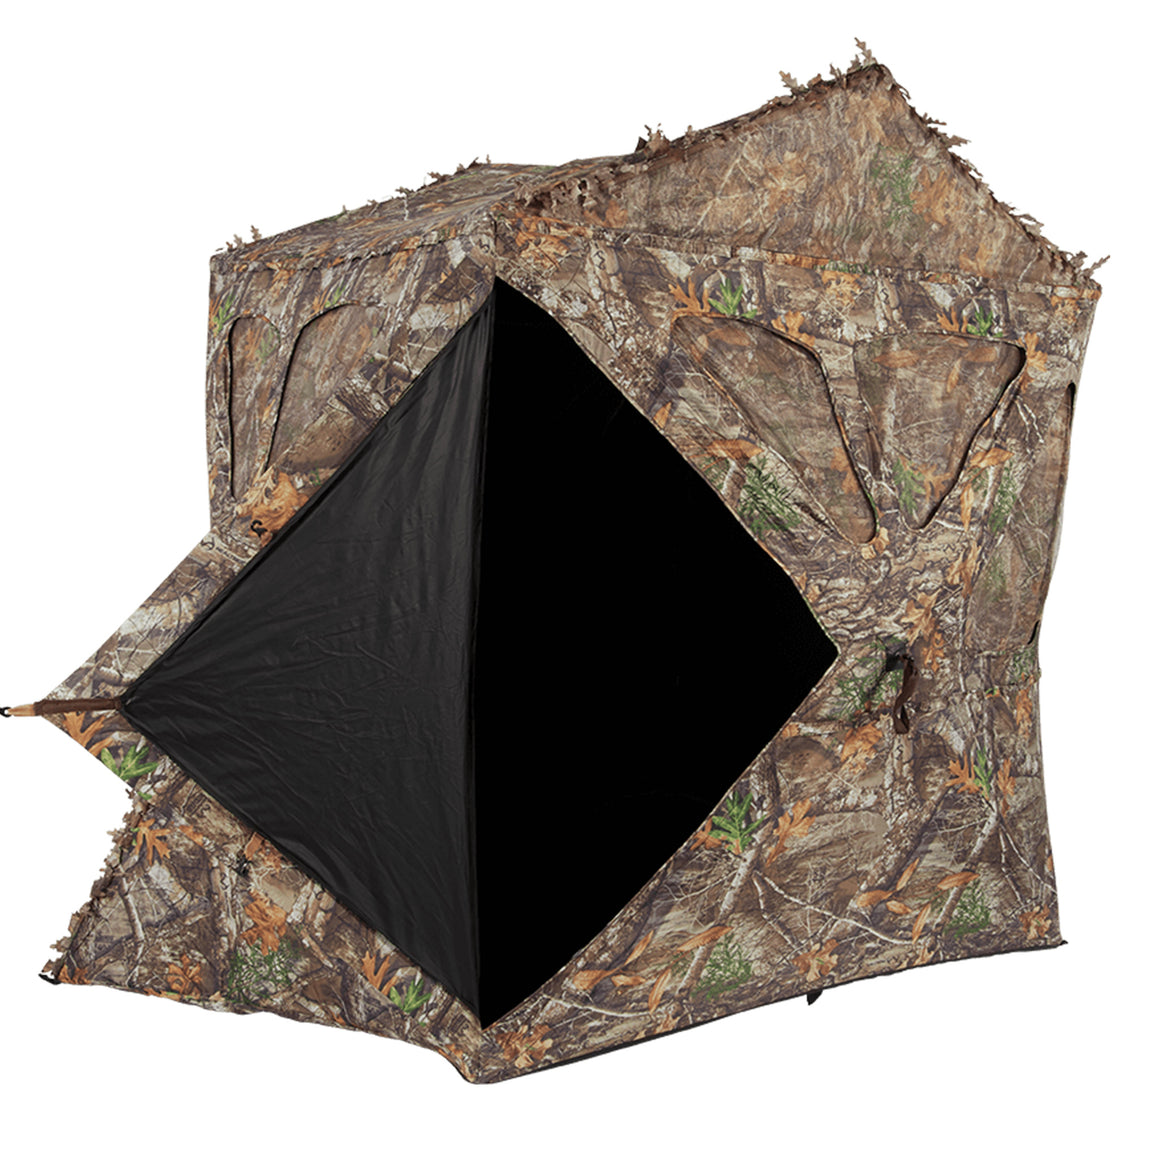 Blinds & Stands - Missouri Valley Archery & Outdoor